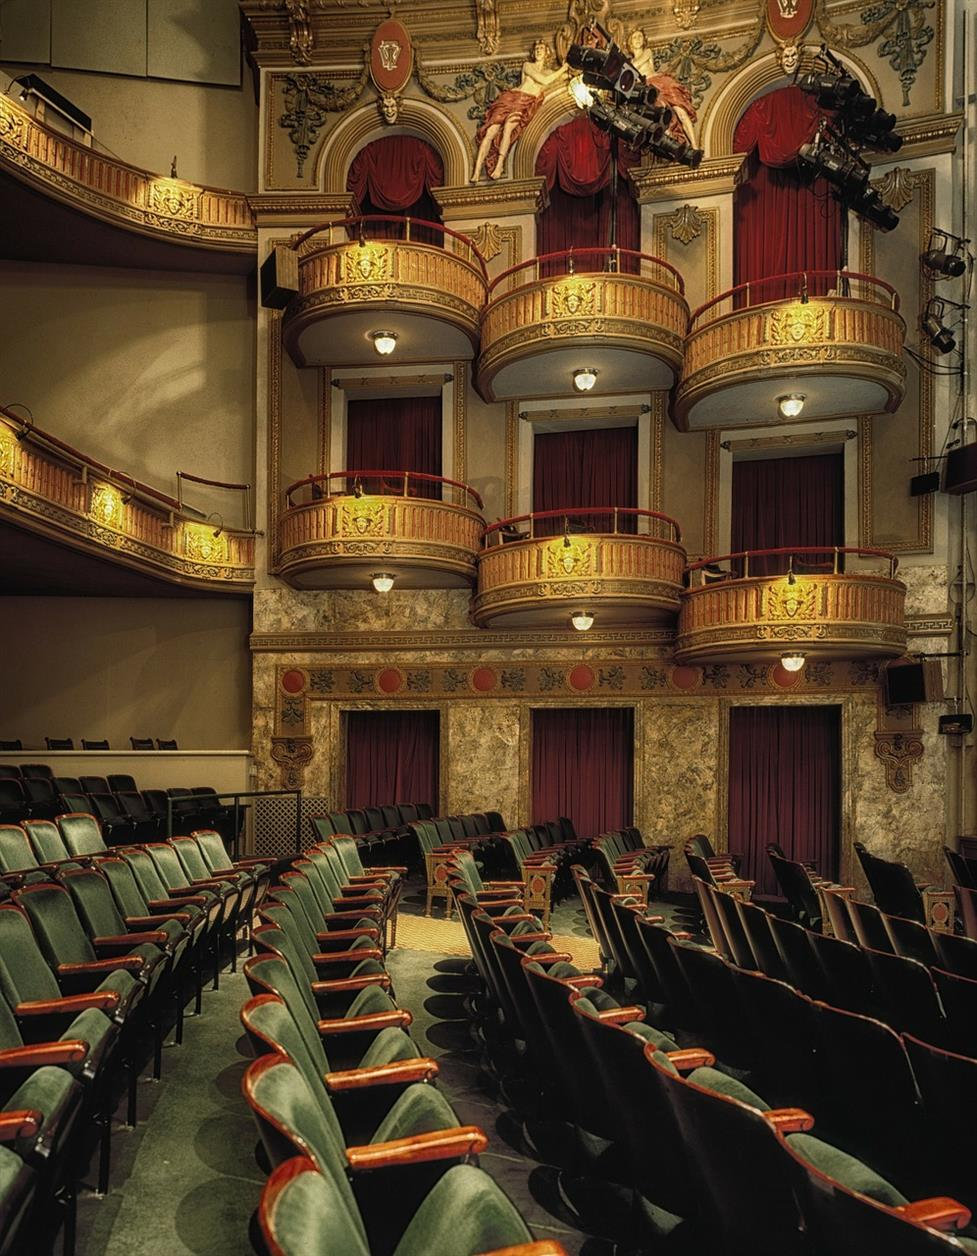 London budget guide - how to get cheap theatre tickets in London